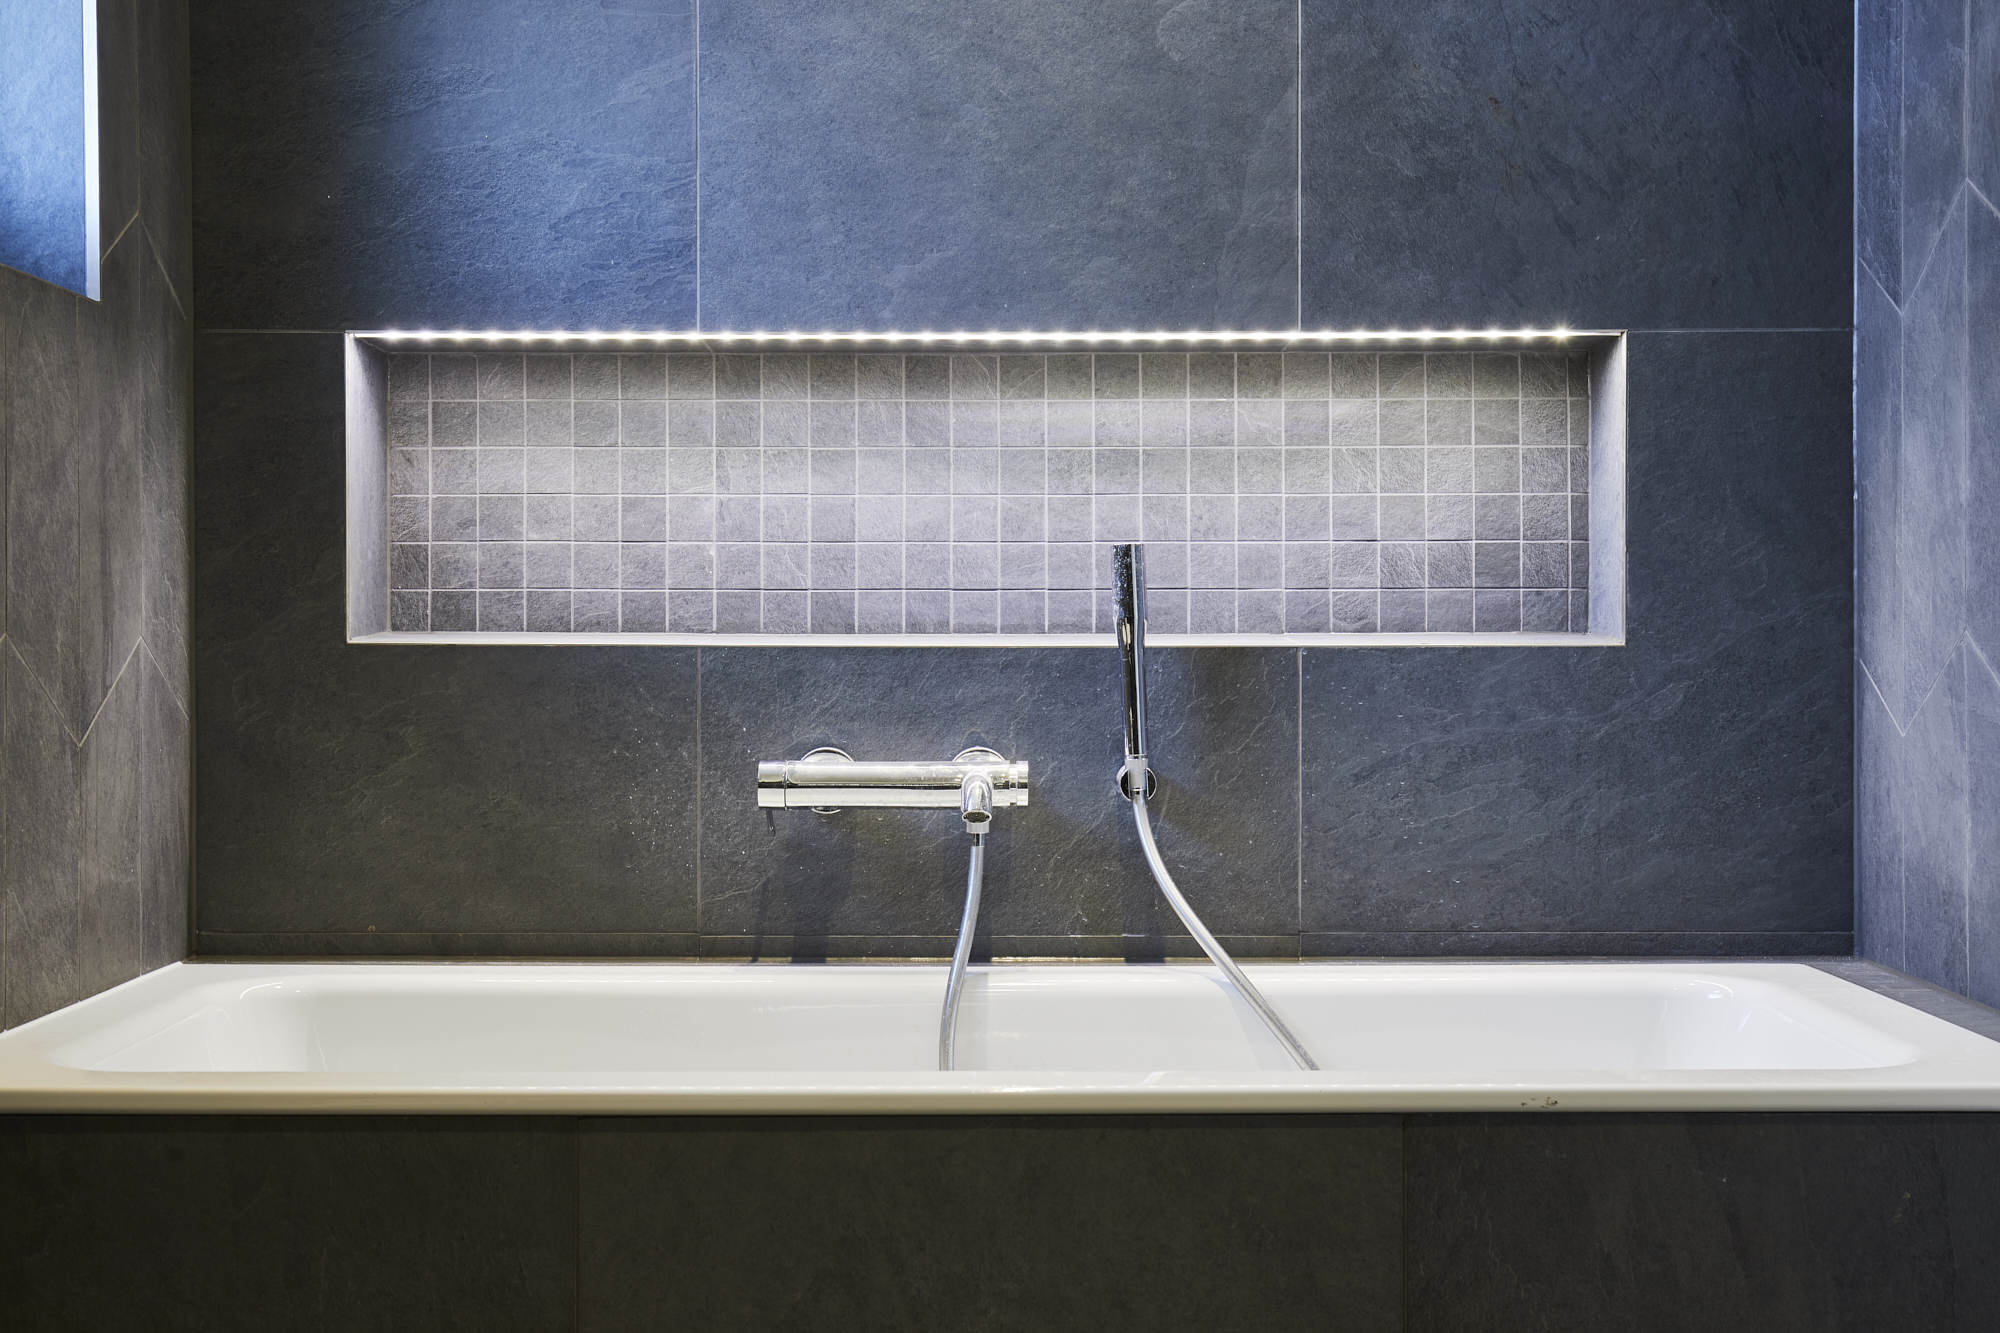 BPM39-Victorian-Penthouse-London-Chiswick-Bathroom-Grey-Italian-Tiles-Porcelain-Mosaic-Niche-Bathtub-Tap-LED-Strip_scaled_Y